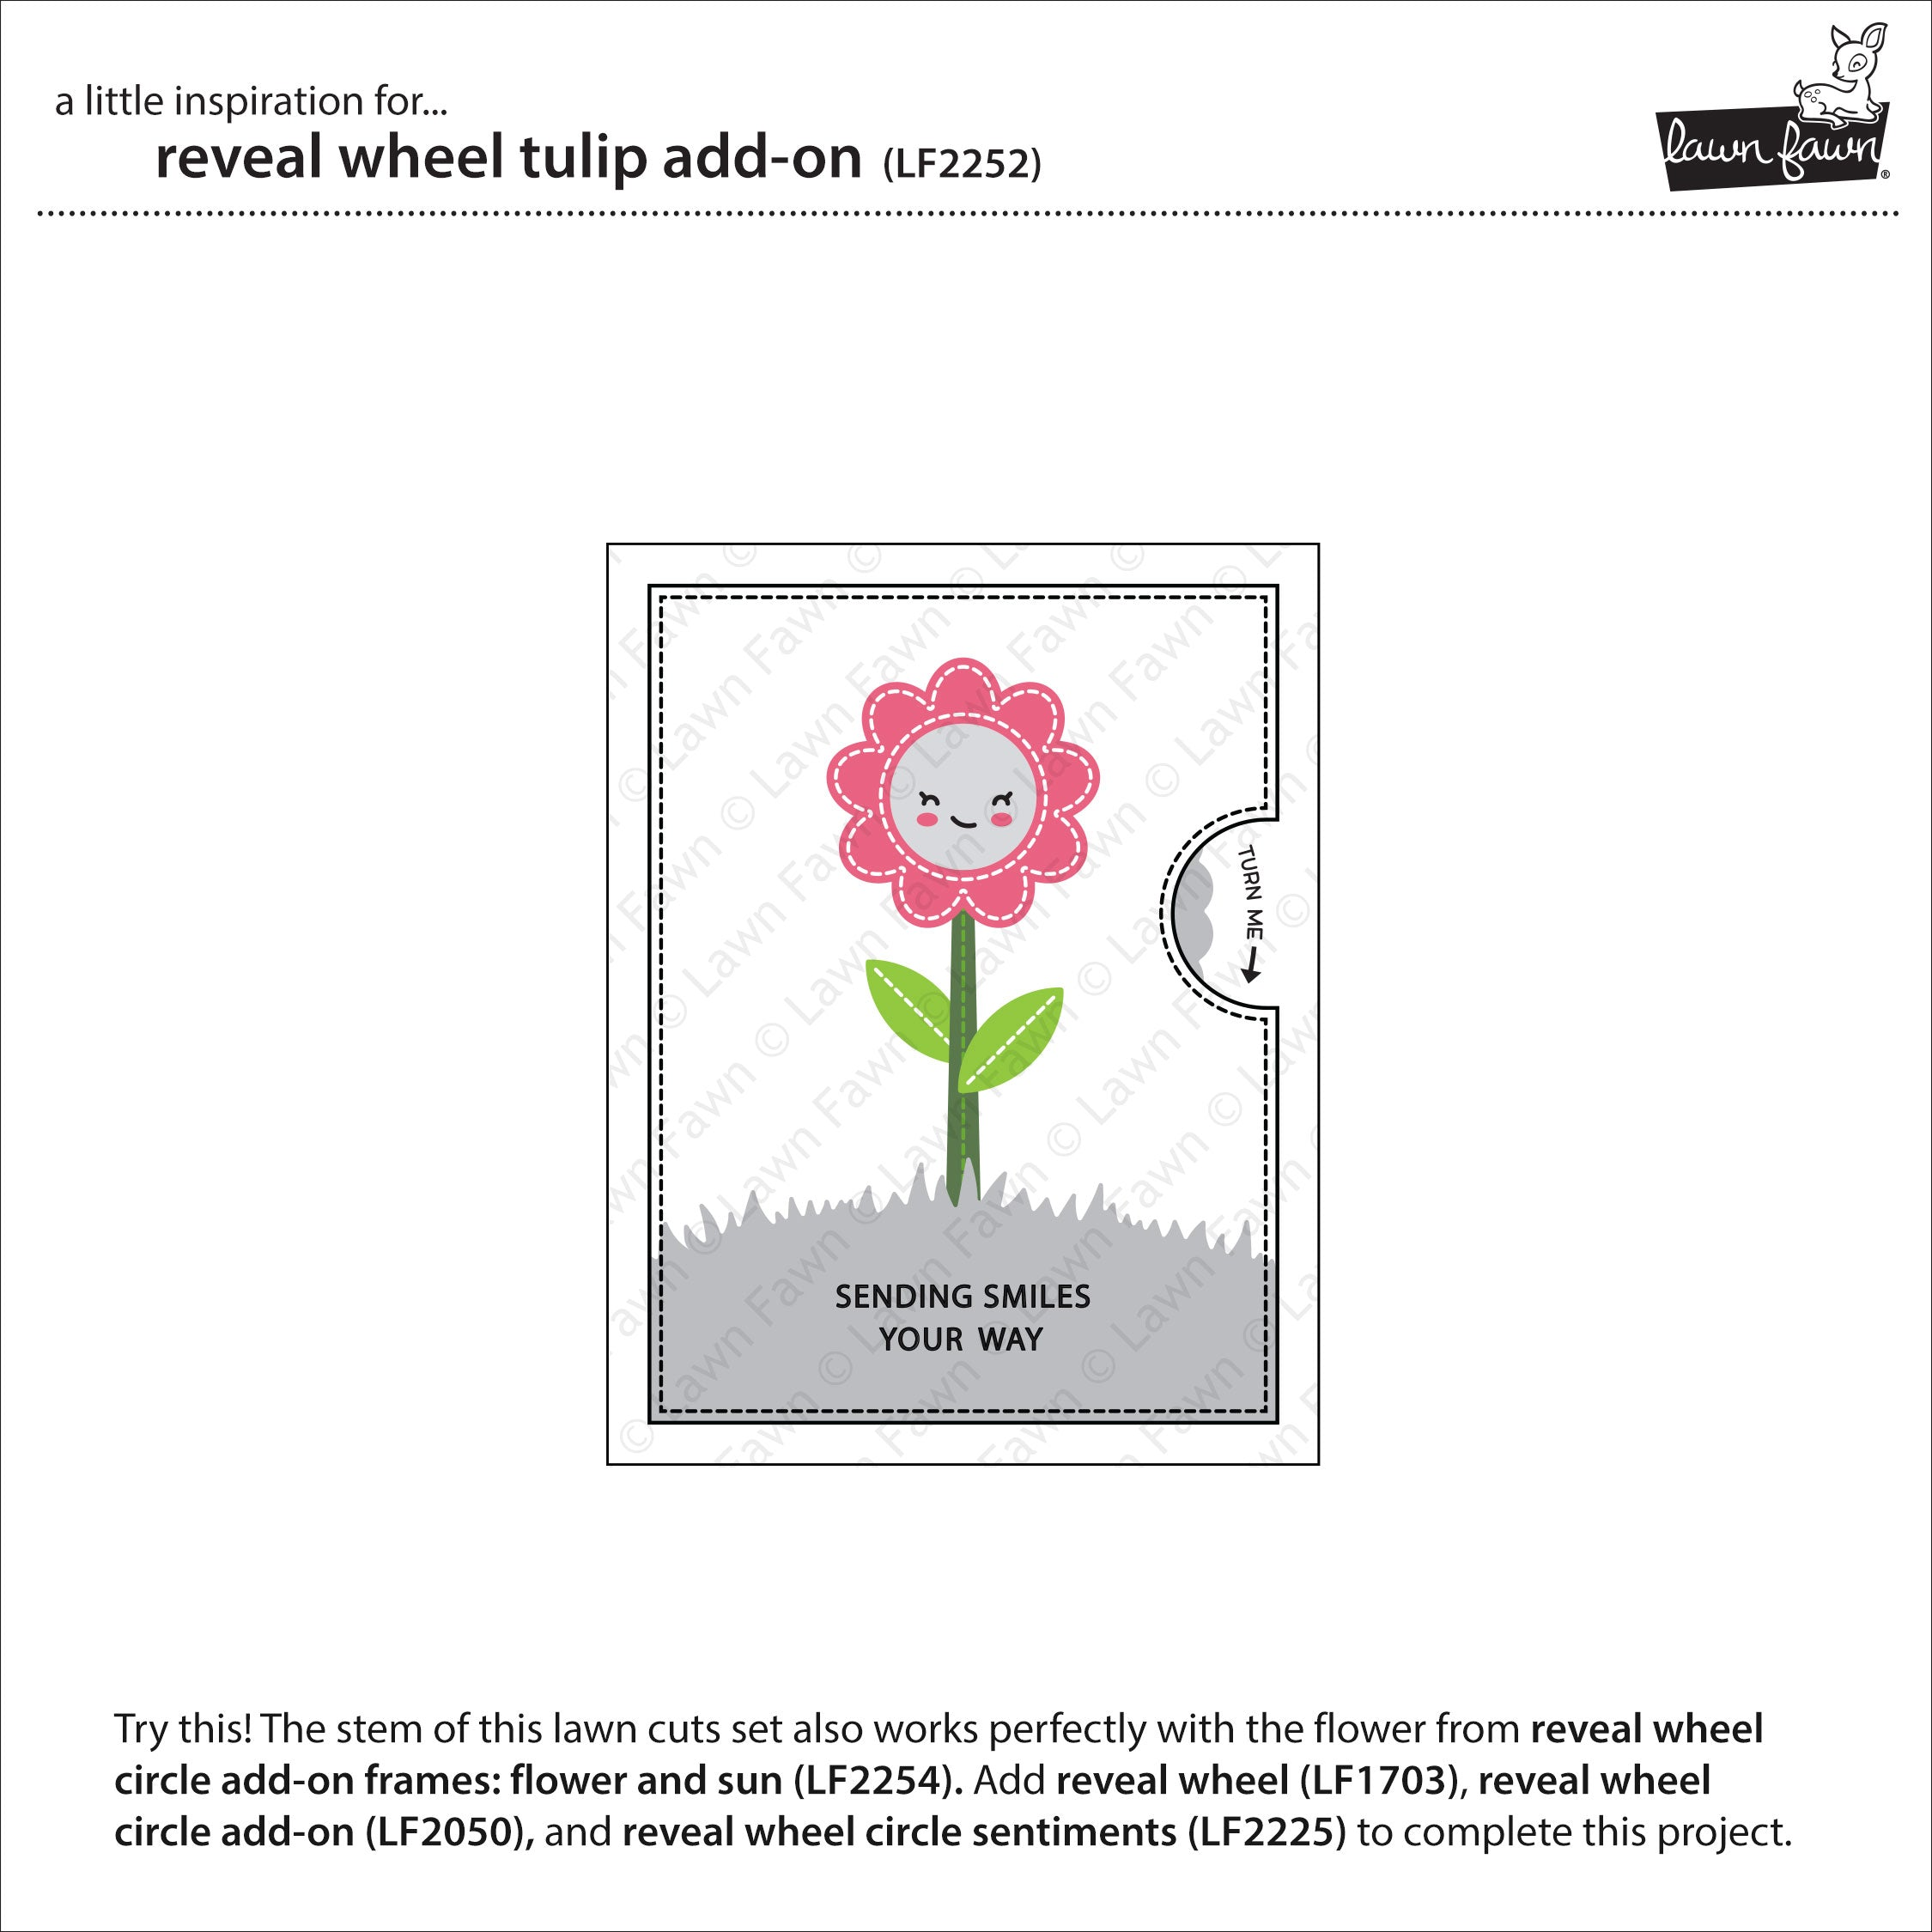 reveal wheel tulip add-on